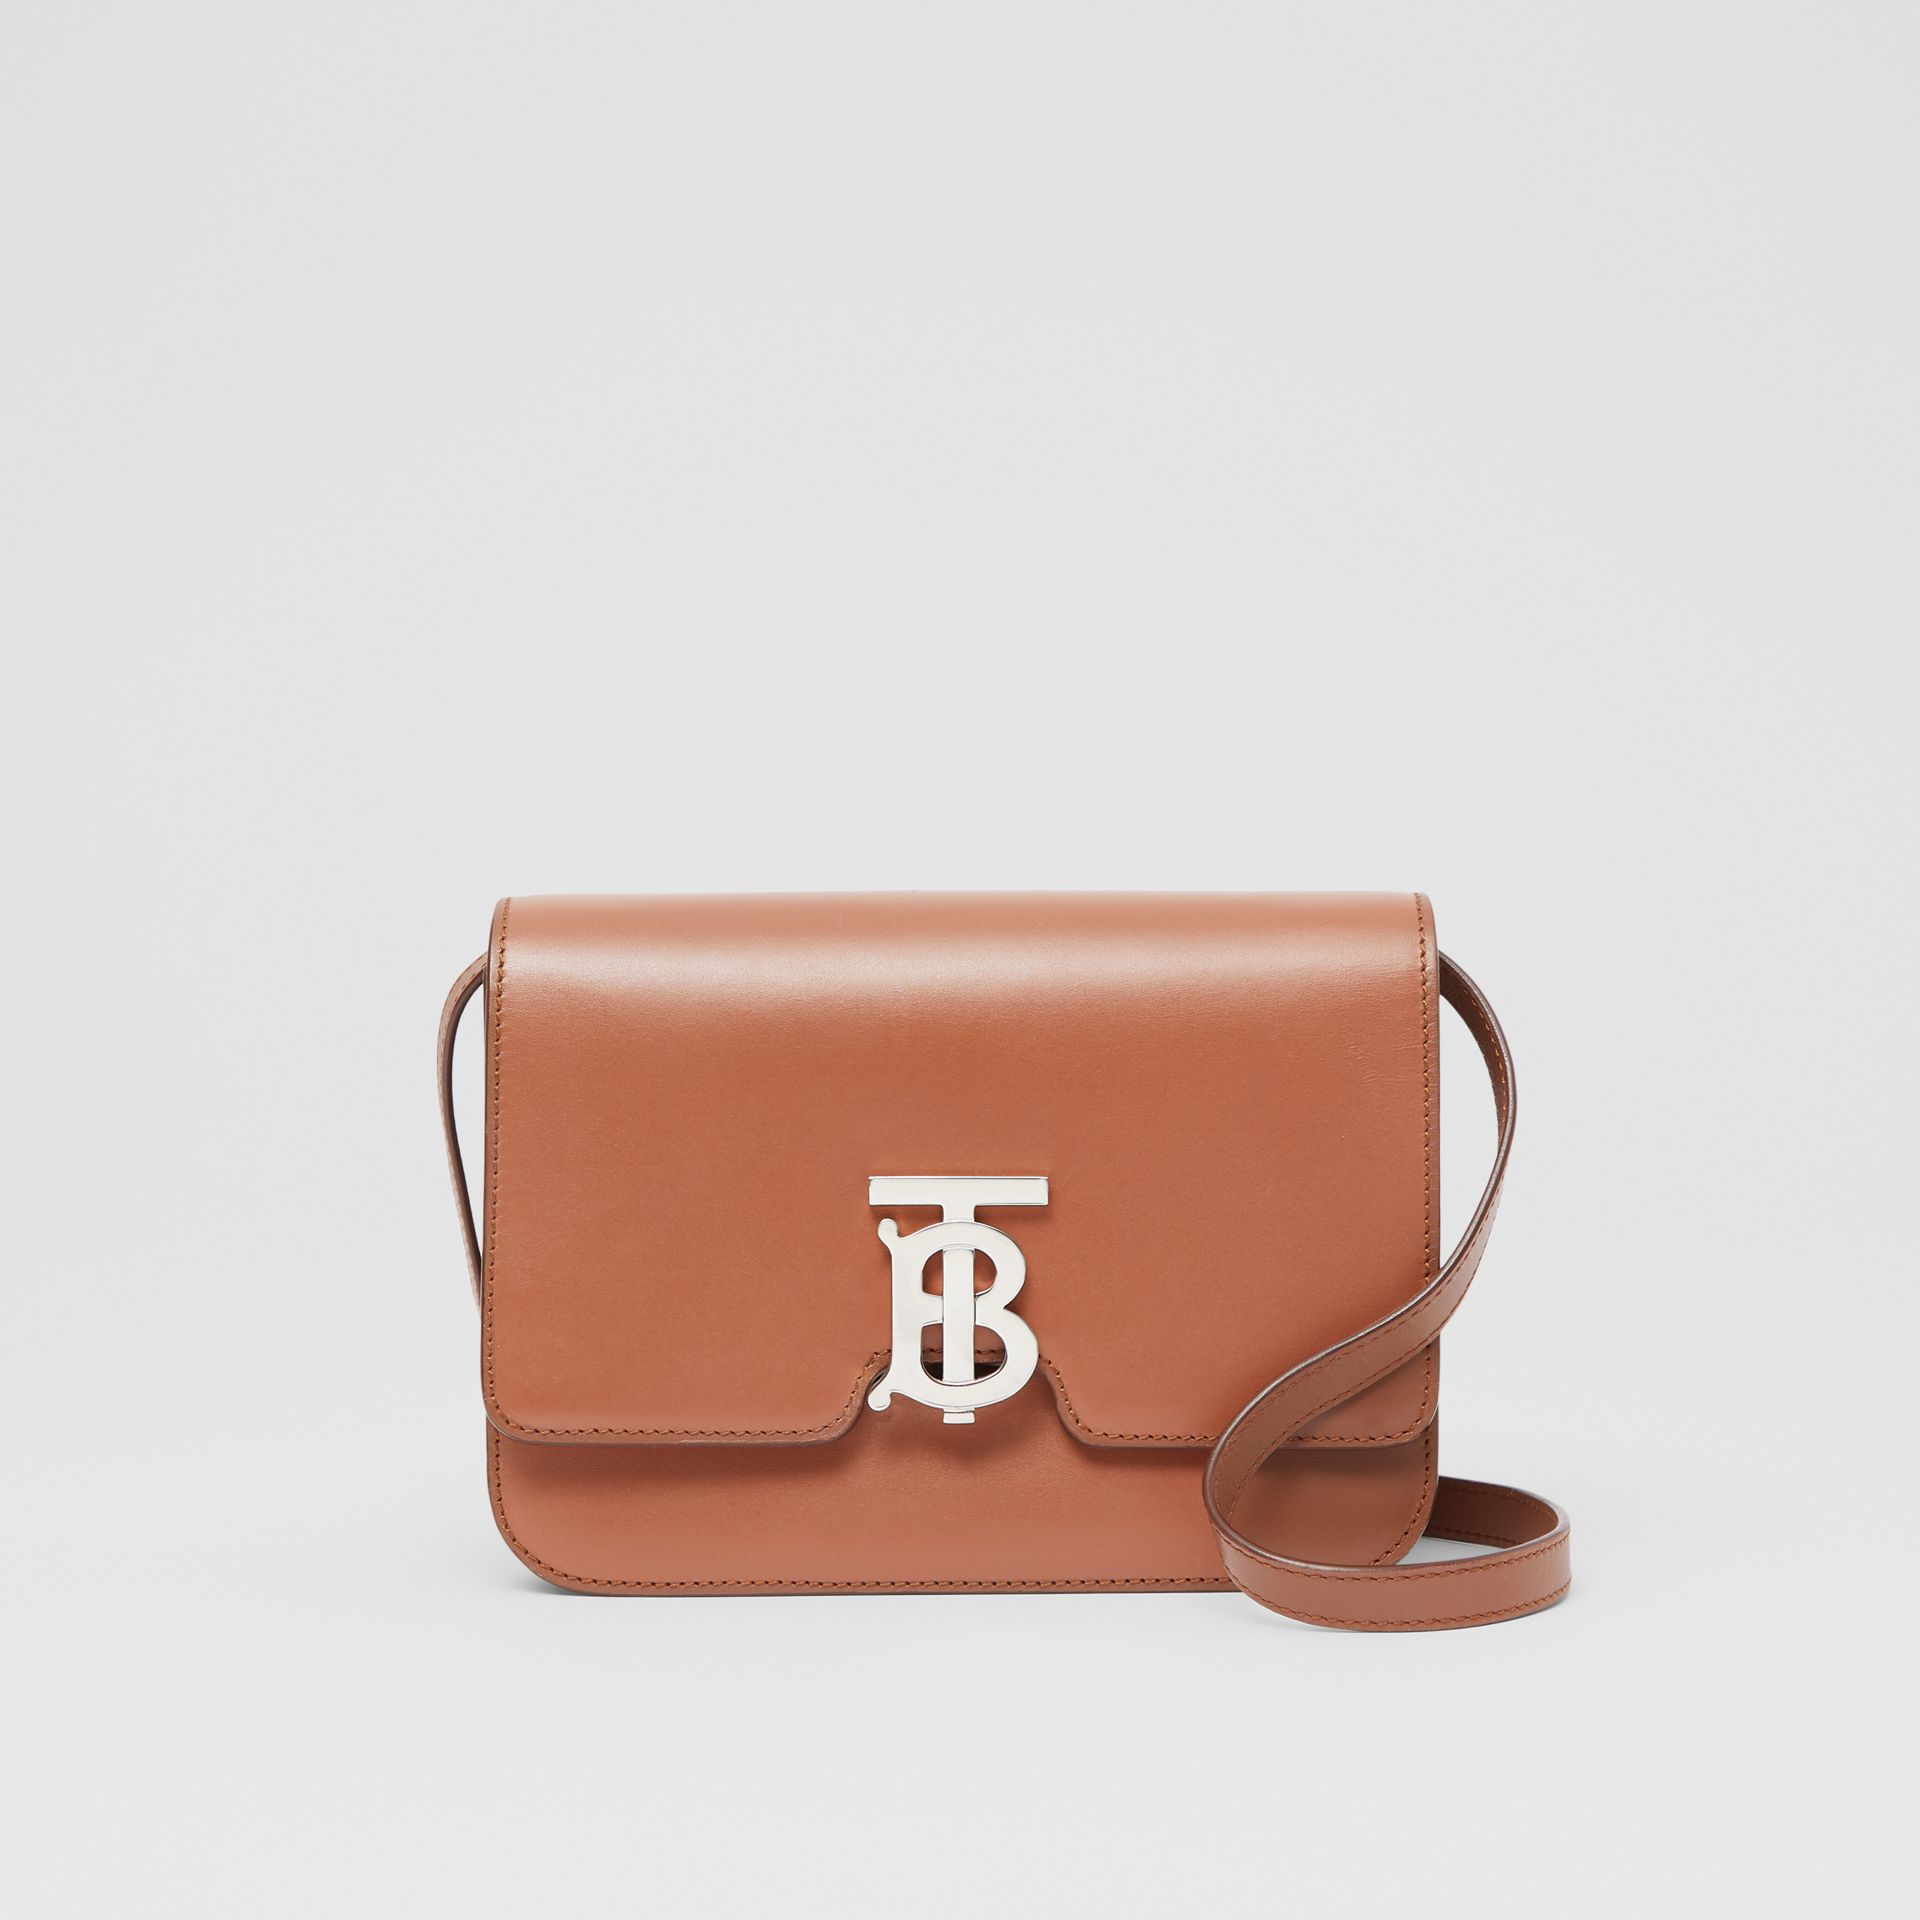 Small Leather TB Bag in Malt Brown - Women | Burberry United States - gallery image 0